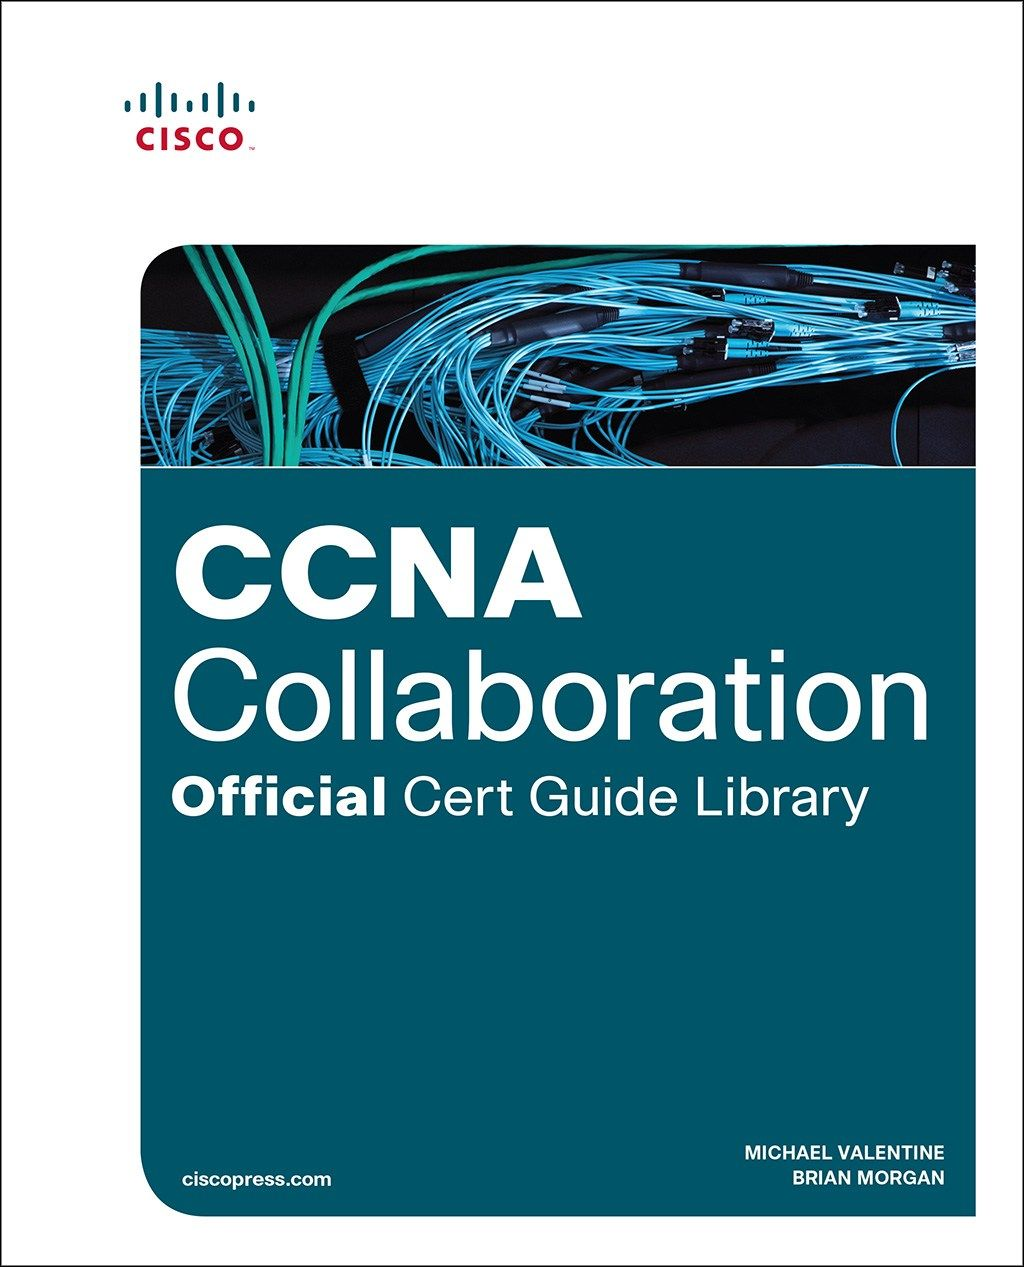 Overview Of Ciscos Ccna Collaboration Certification White Board